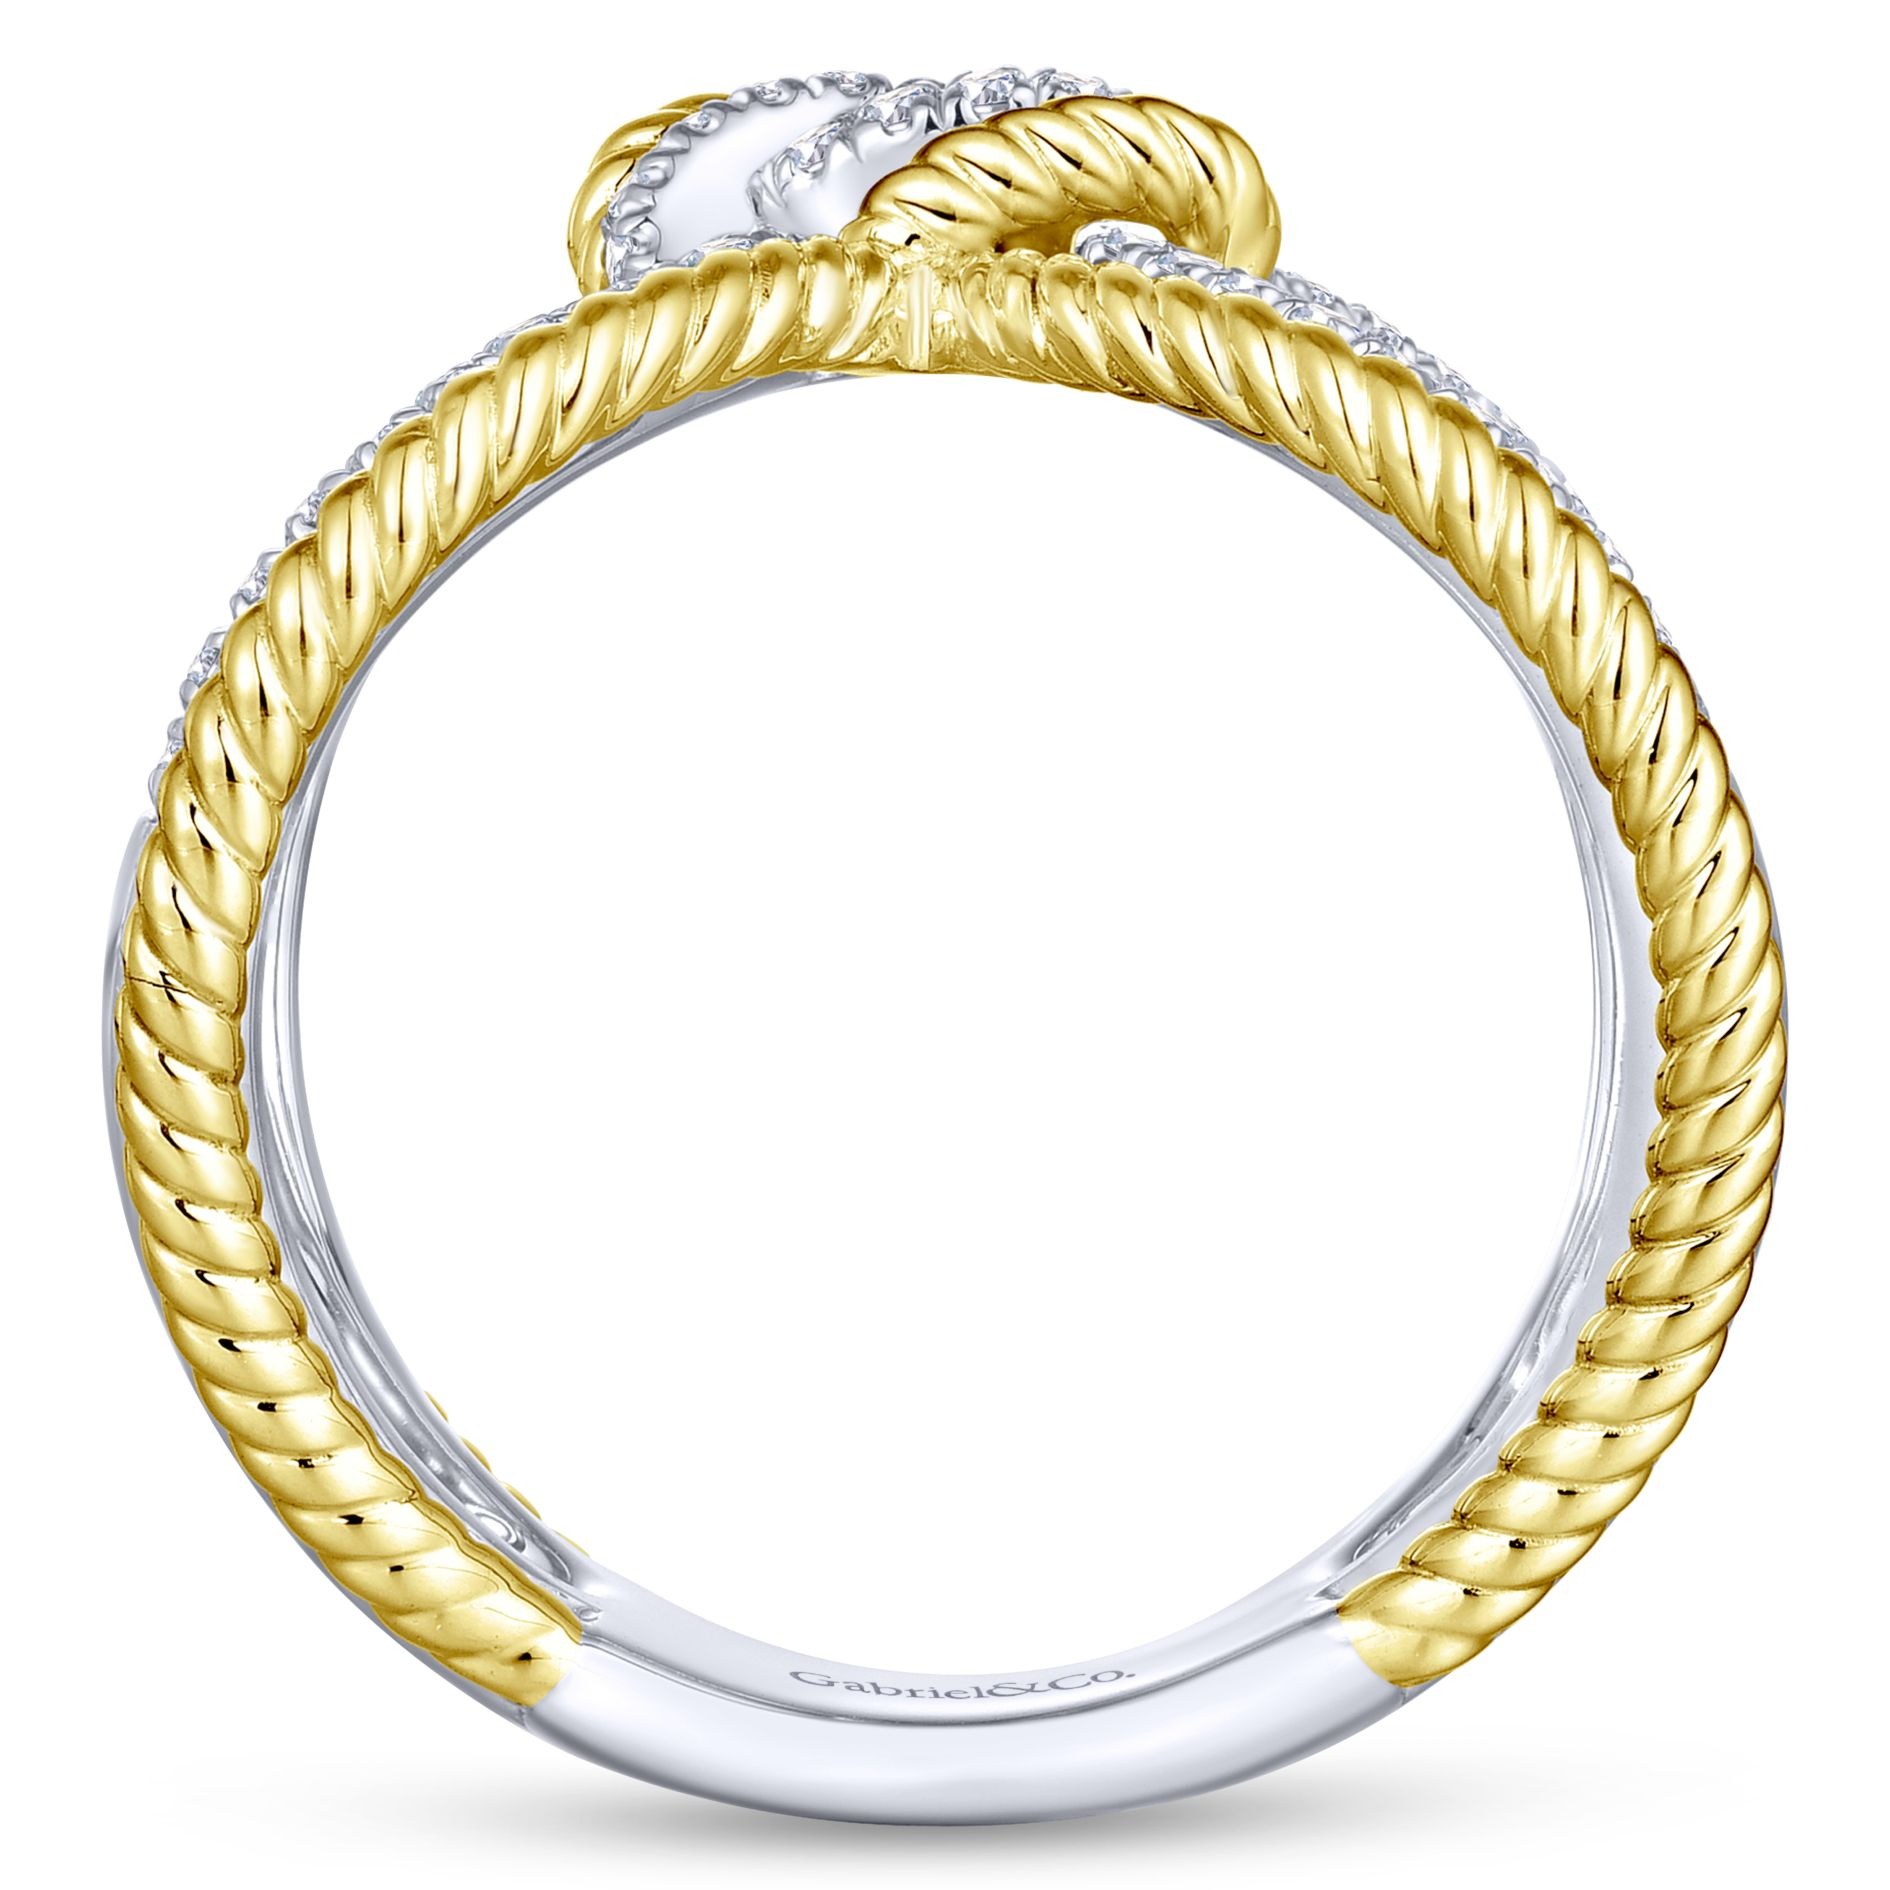 Rings - YELLOW/WHITE GOLD TWISTED DIAMOND LADIES RING - image #2